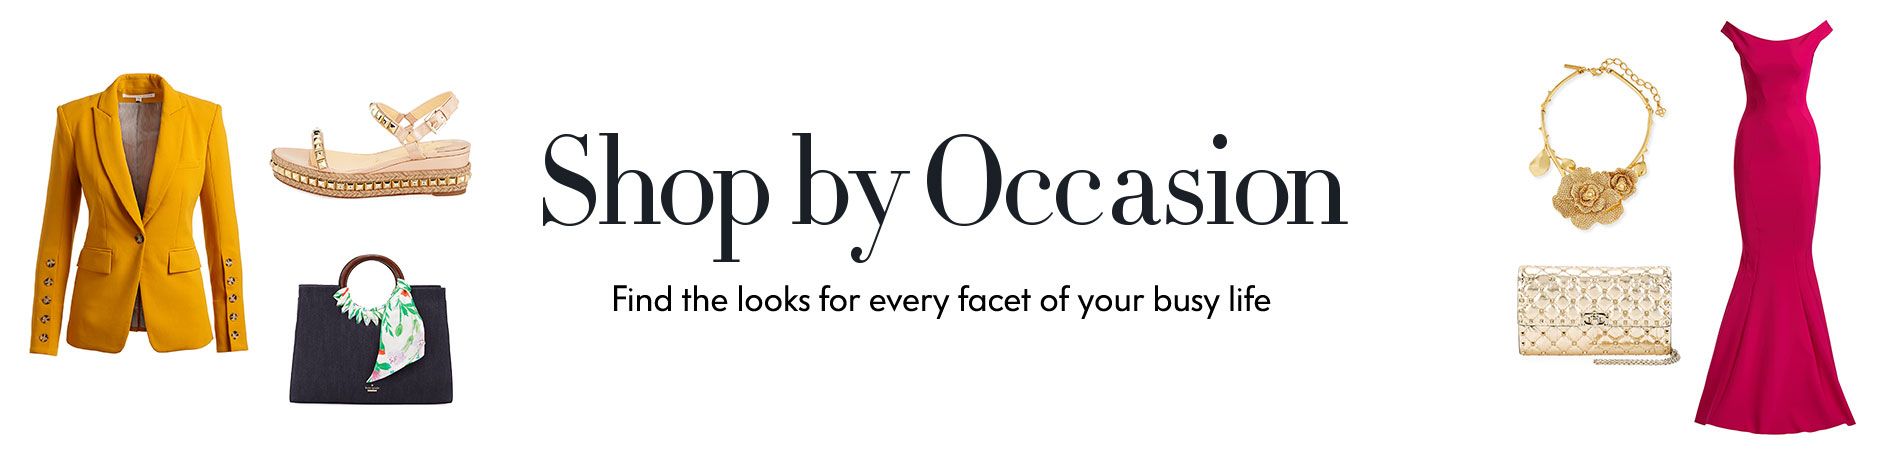 Shop by Occasion - Find the looks for every facet of your busy life